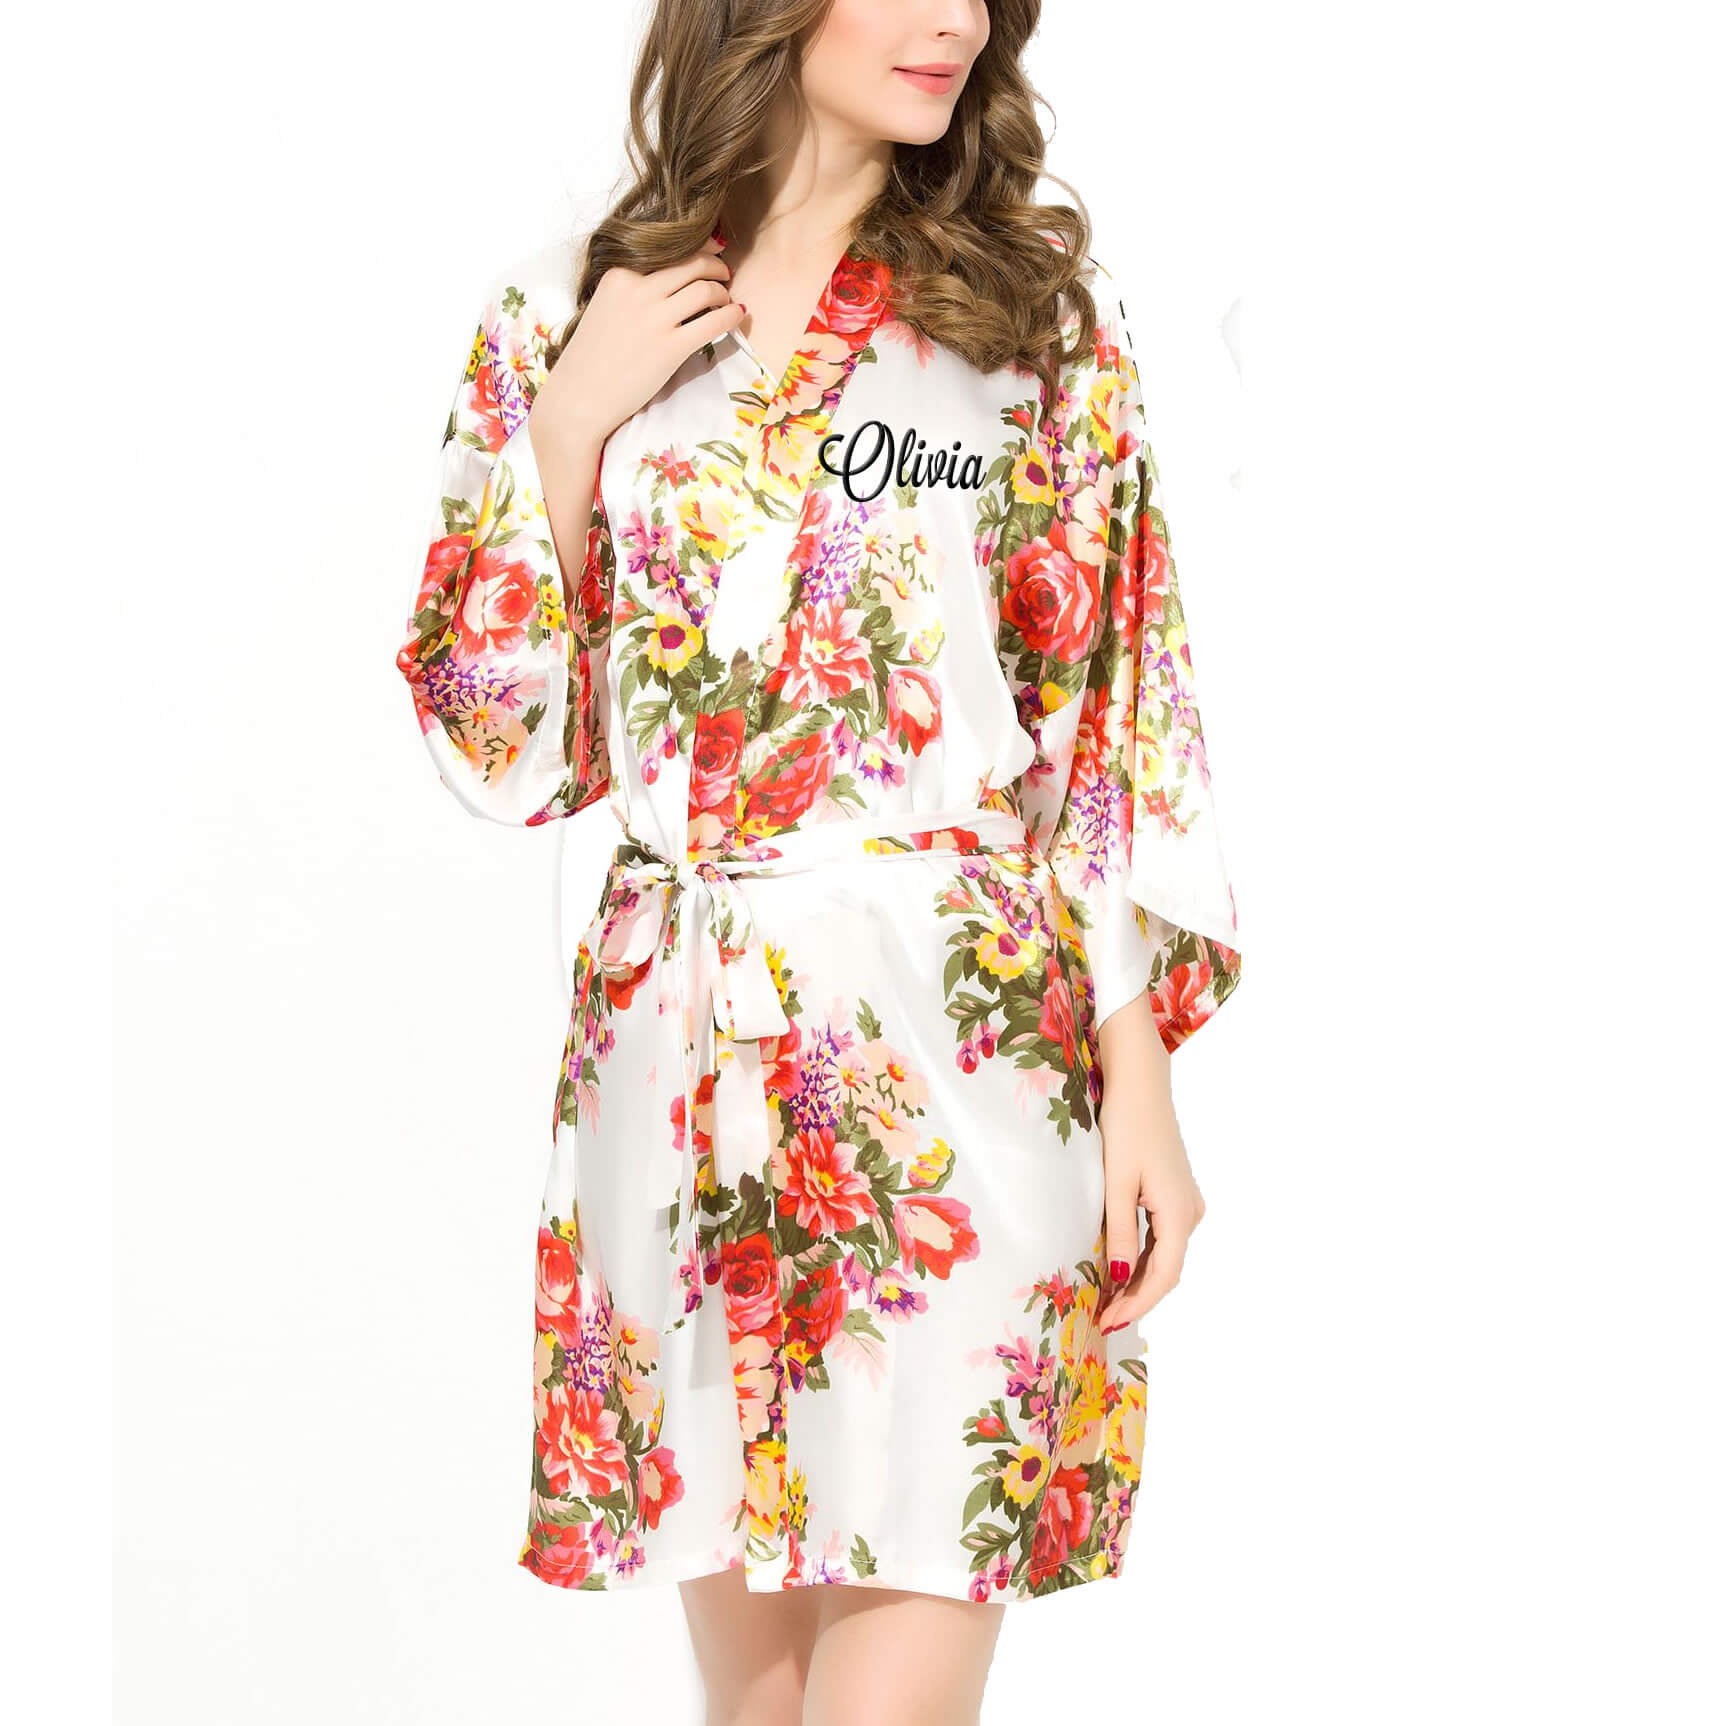 floral satin robe with embroidered name